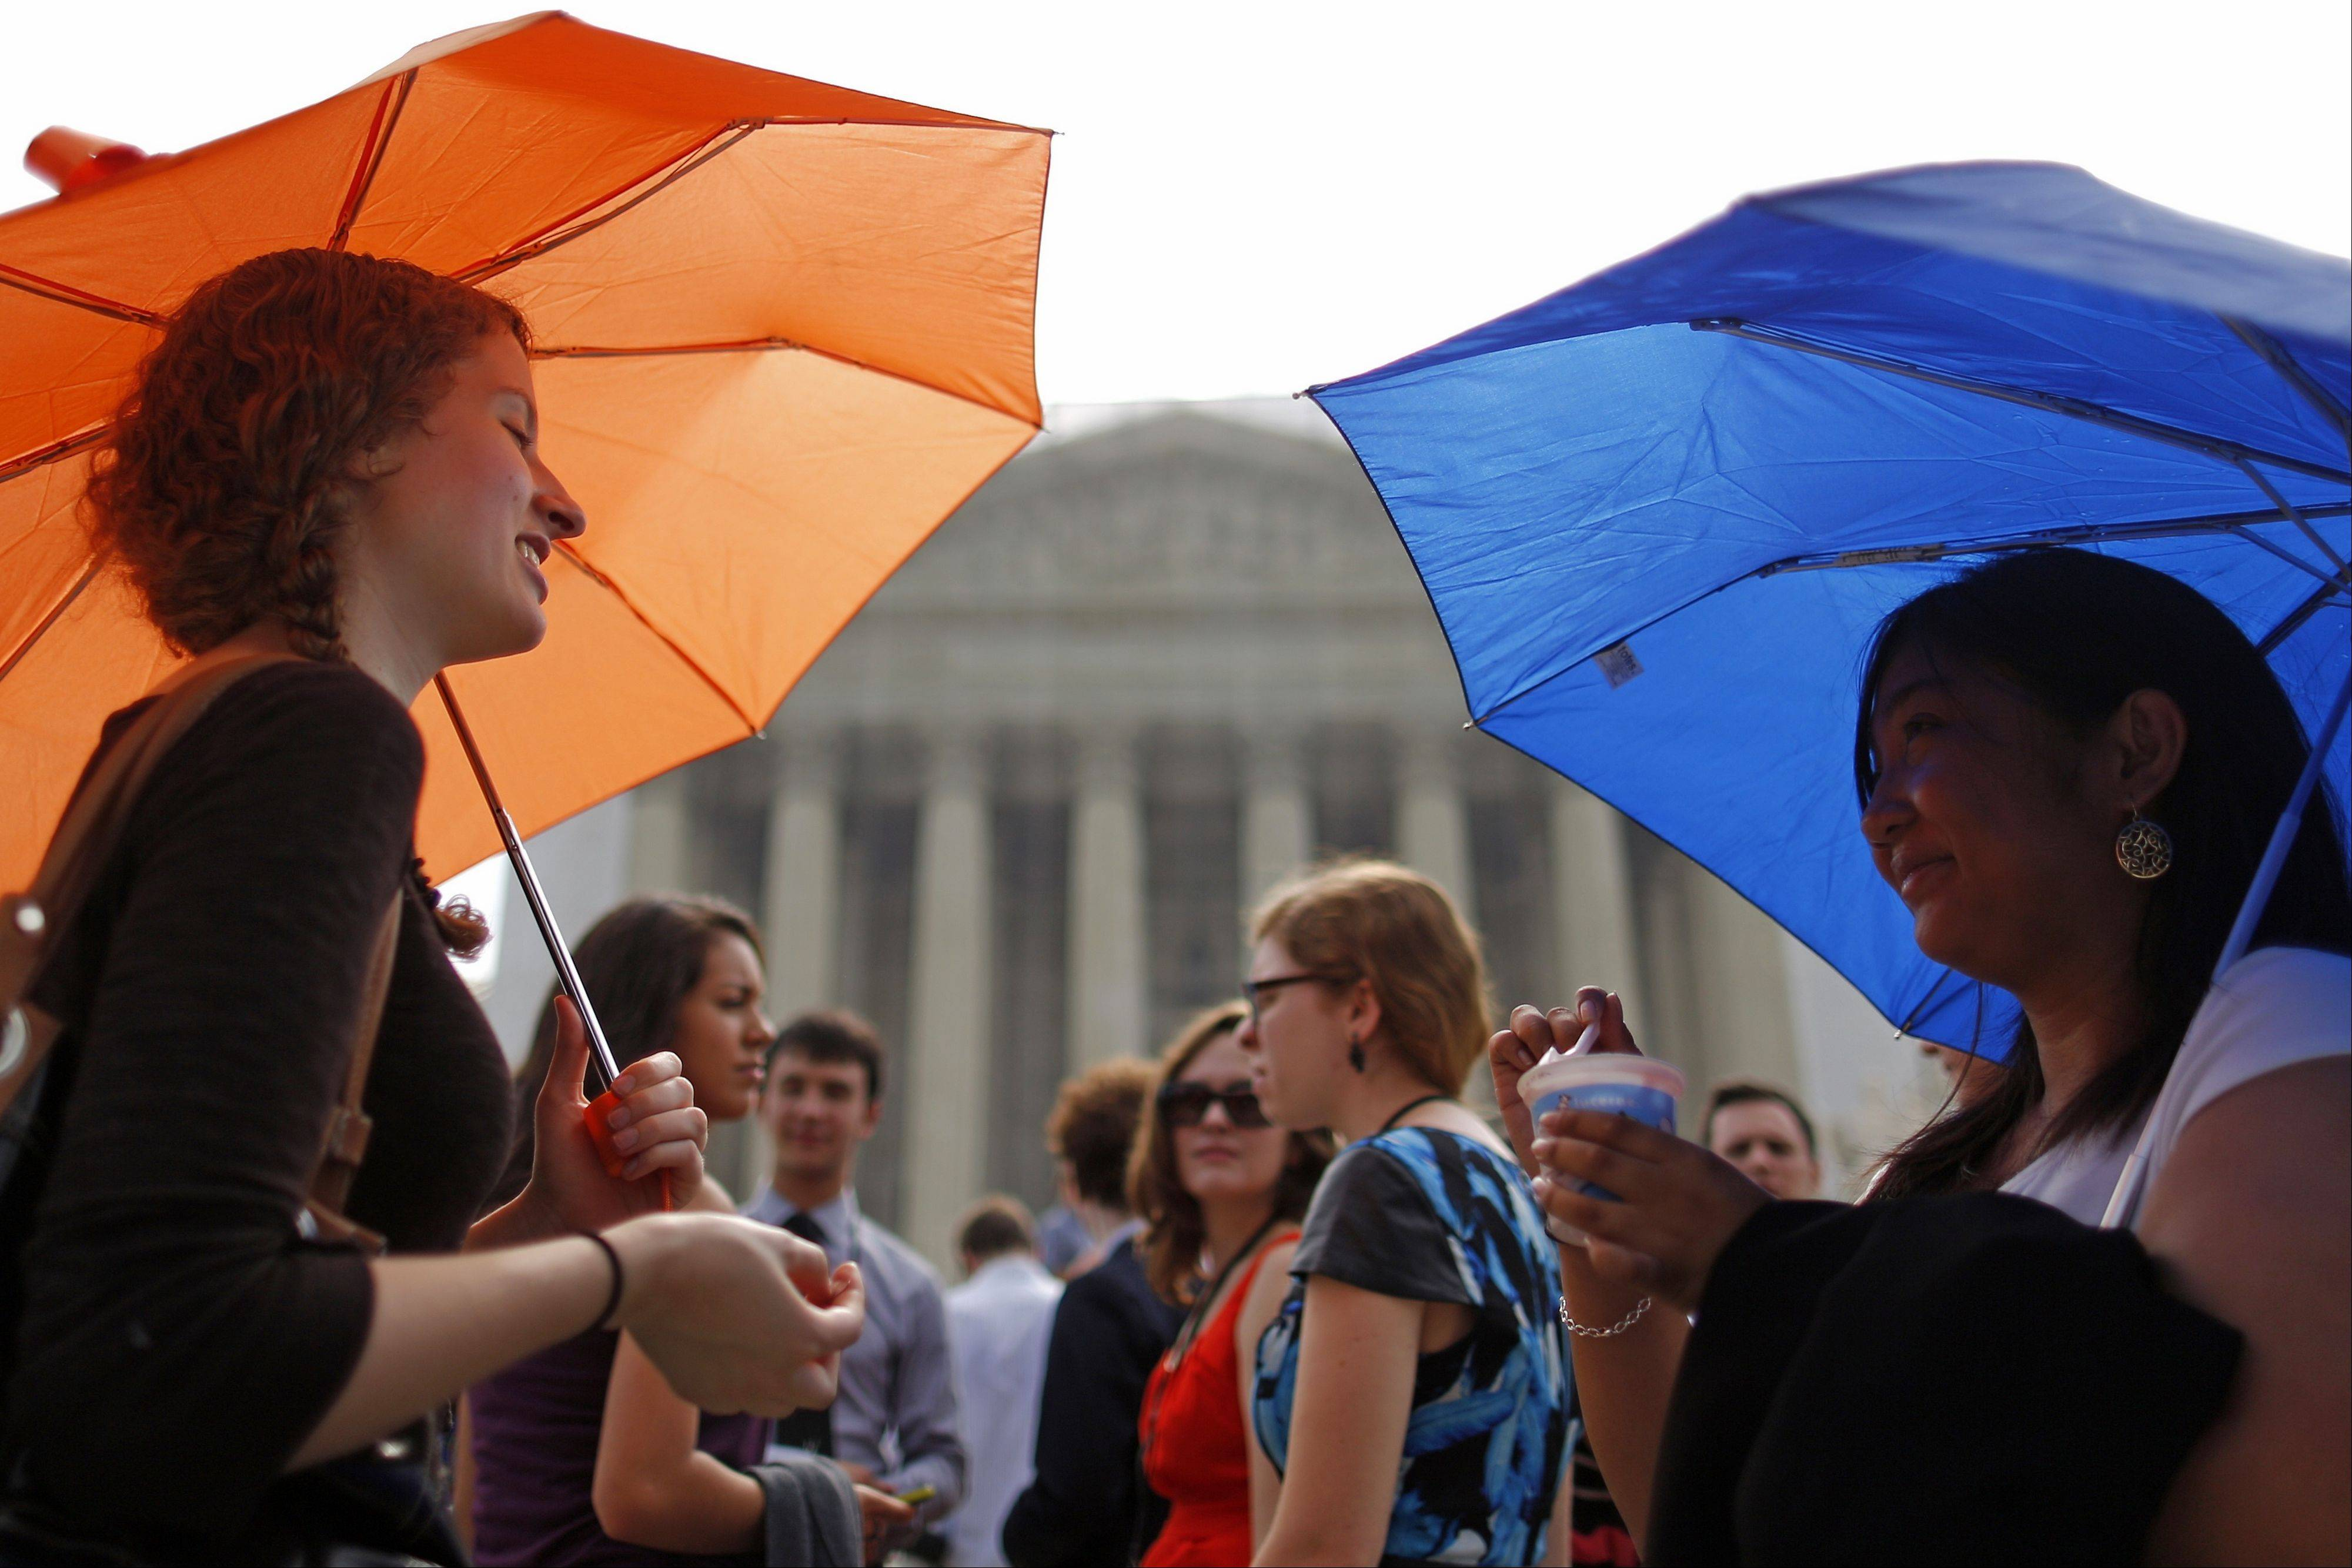 Livia Maas, left, and Khrystan Policarpio, both from Berkeley, Calif., stand under umbrellas to shield themselves from the sun in front of the Supreme Court in Washington Monday, as they queue for the court�s session.